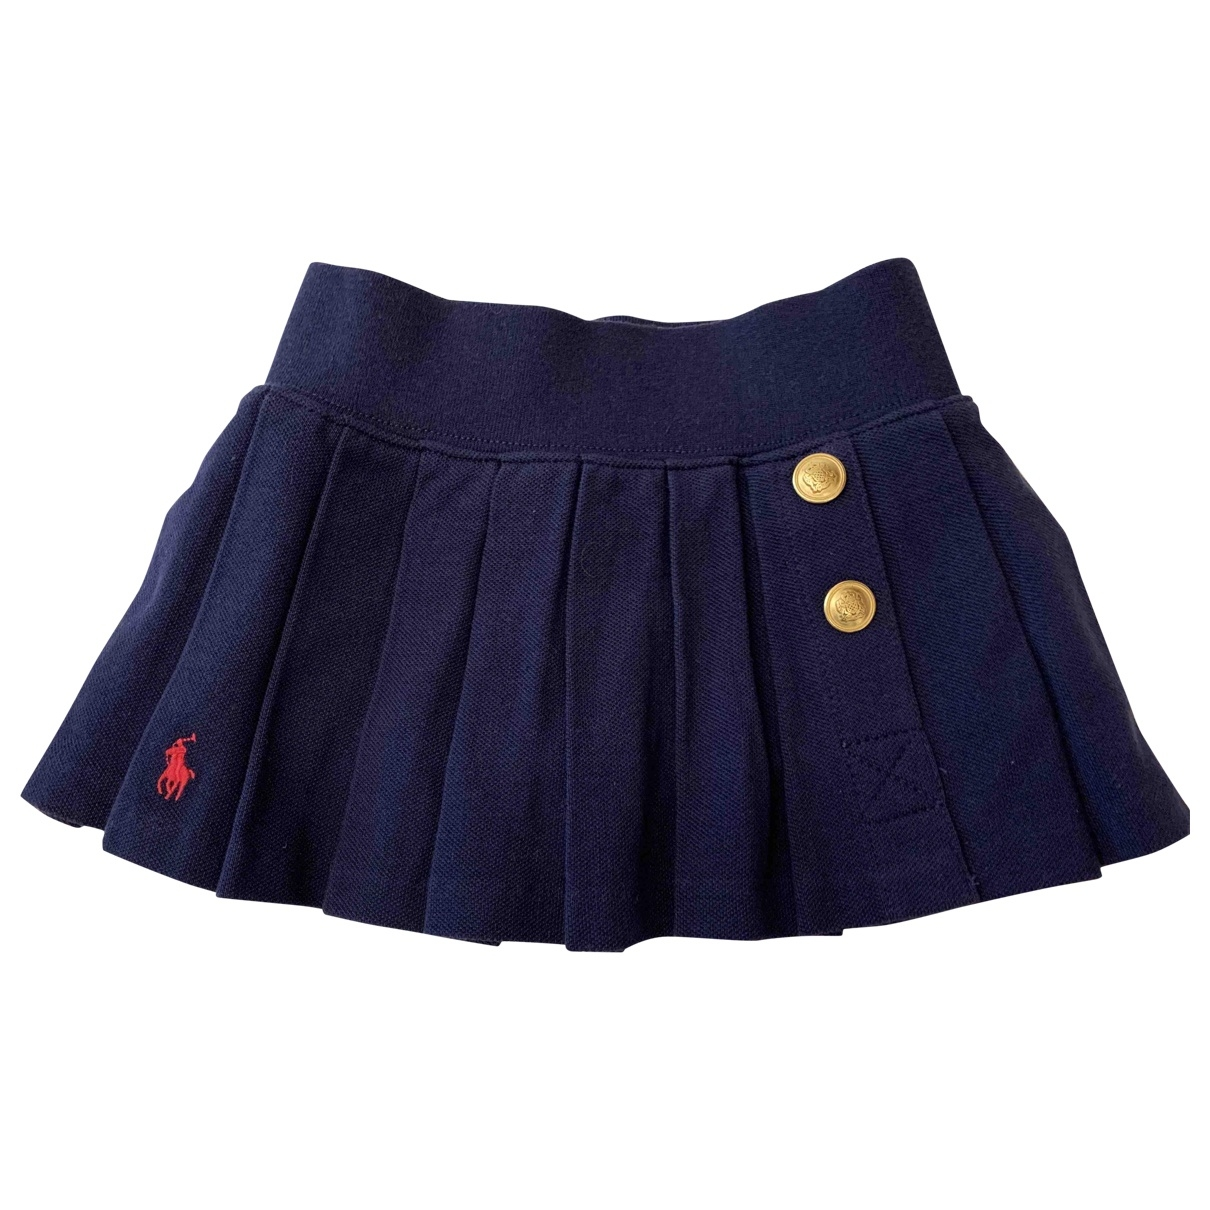 Polo Ralph Lauren \N Navy Cotton skirt for Kids 2 years - up to 86cm FR